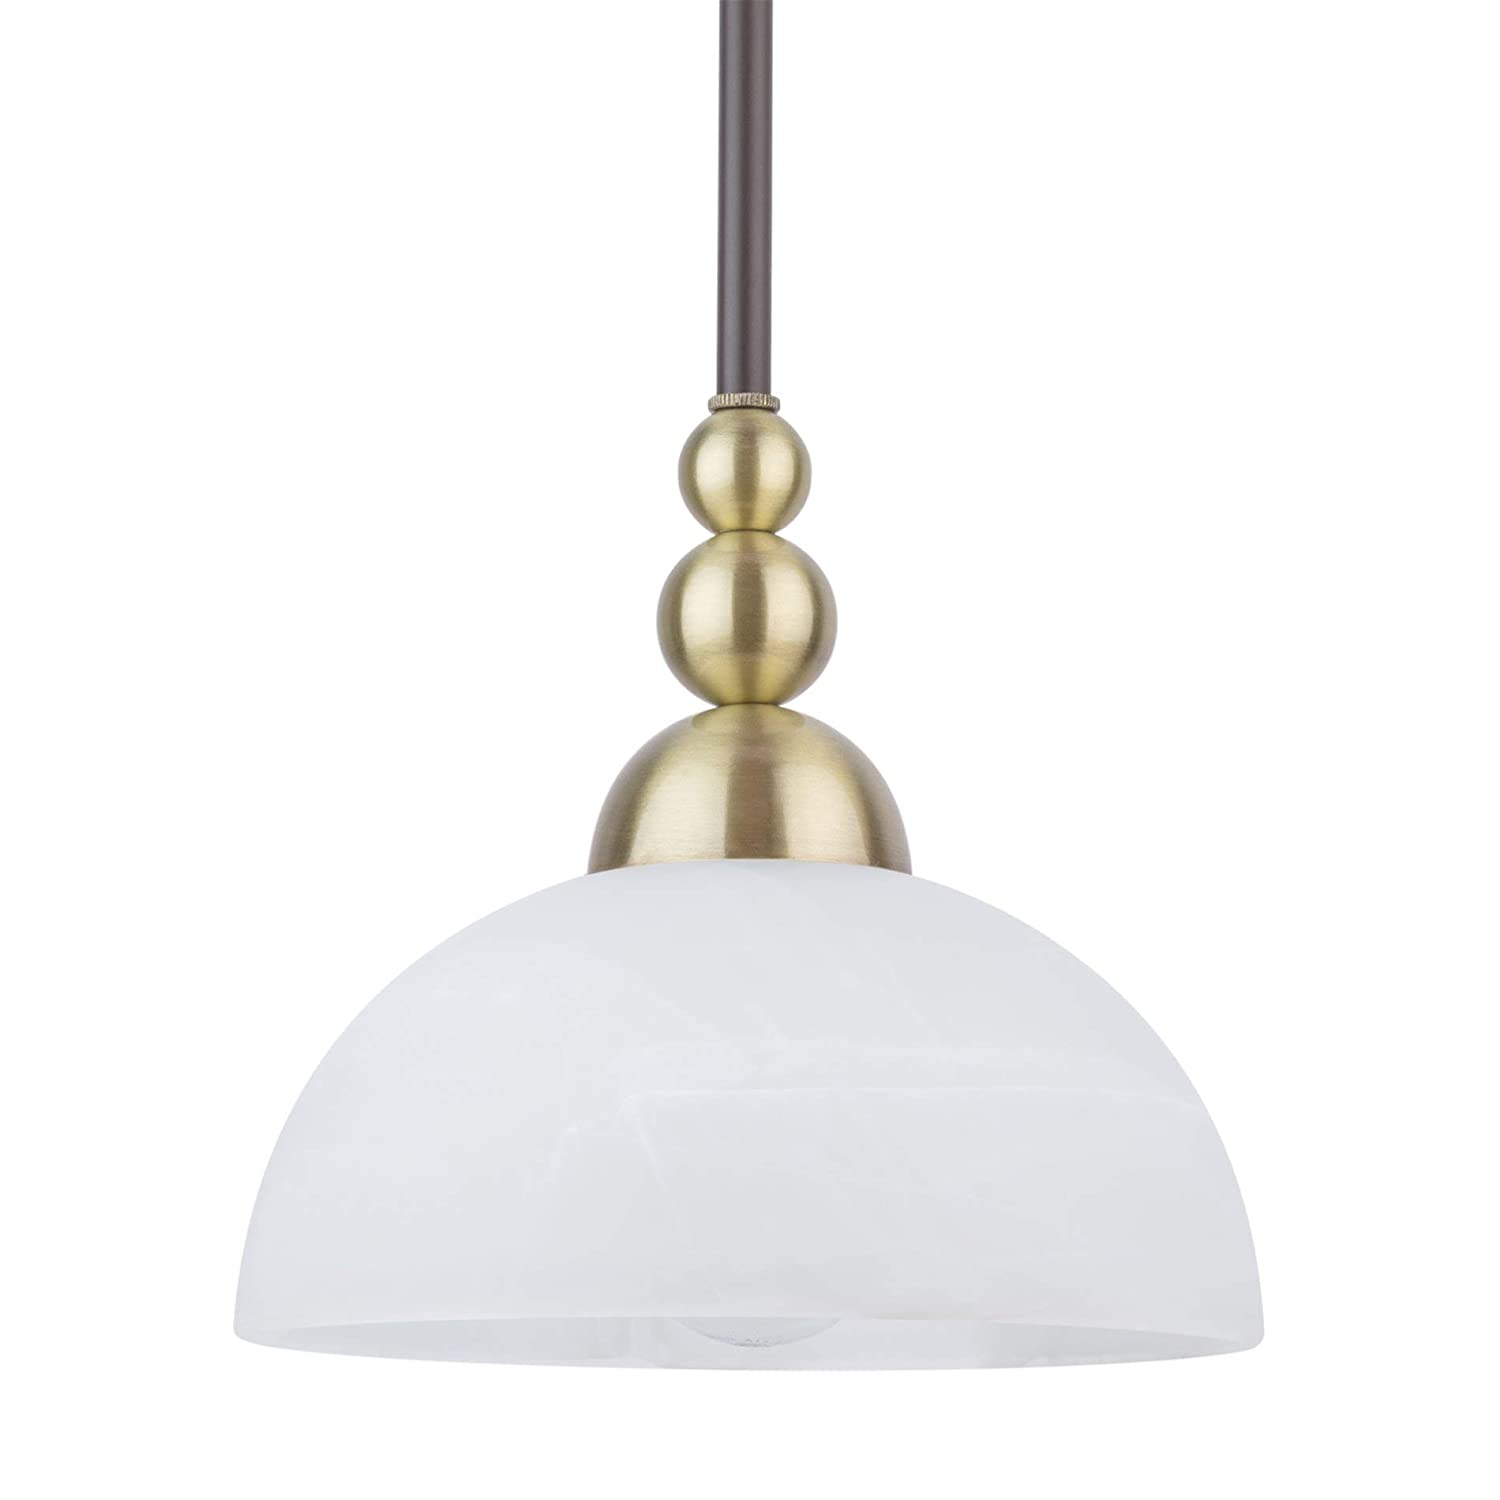 """Kira Home Athena 8"""" Modern Pendant Light + Alabaster Glass Shade, Antique Brass Accents, Adjustable Hanging Height, Oil Rubbed Bronze Finish"""